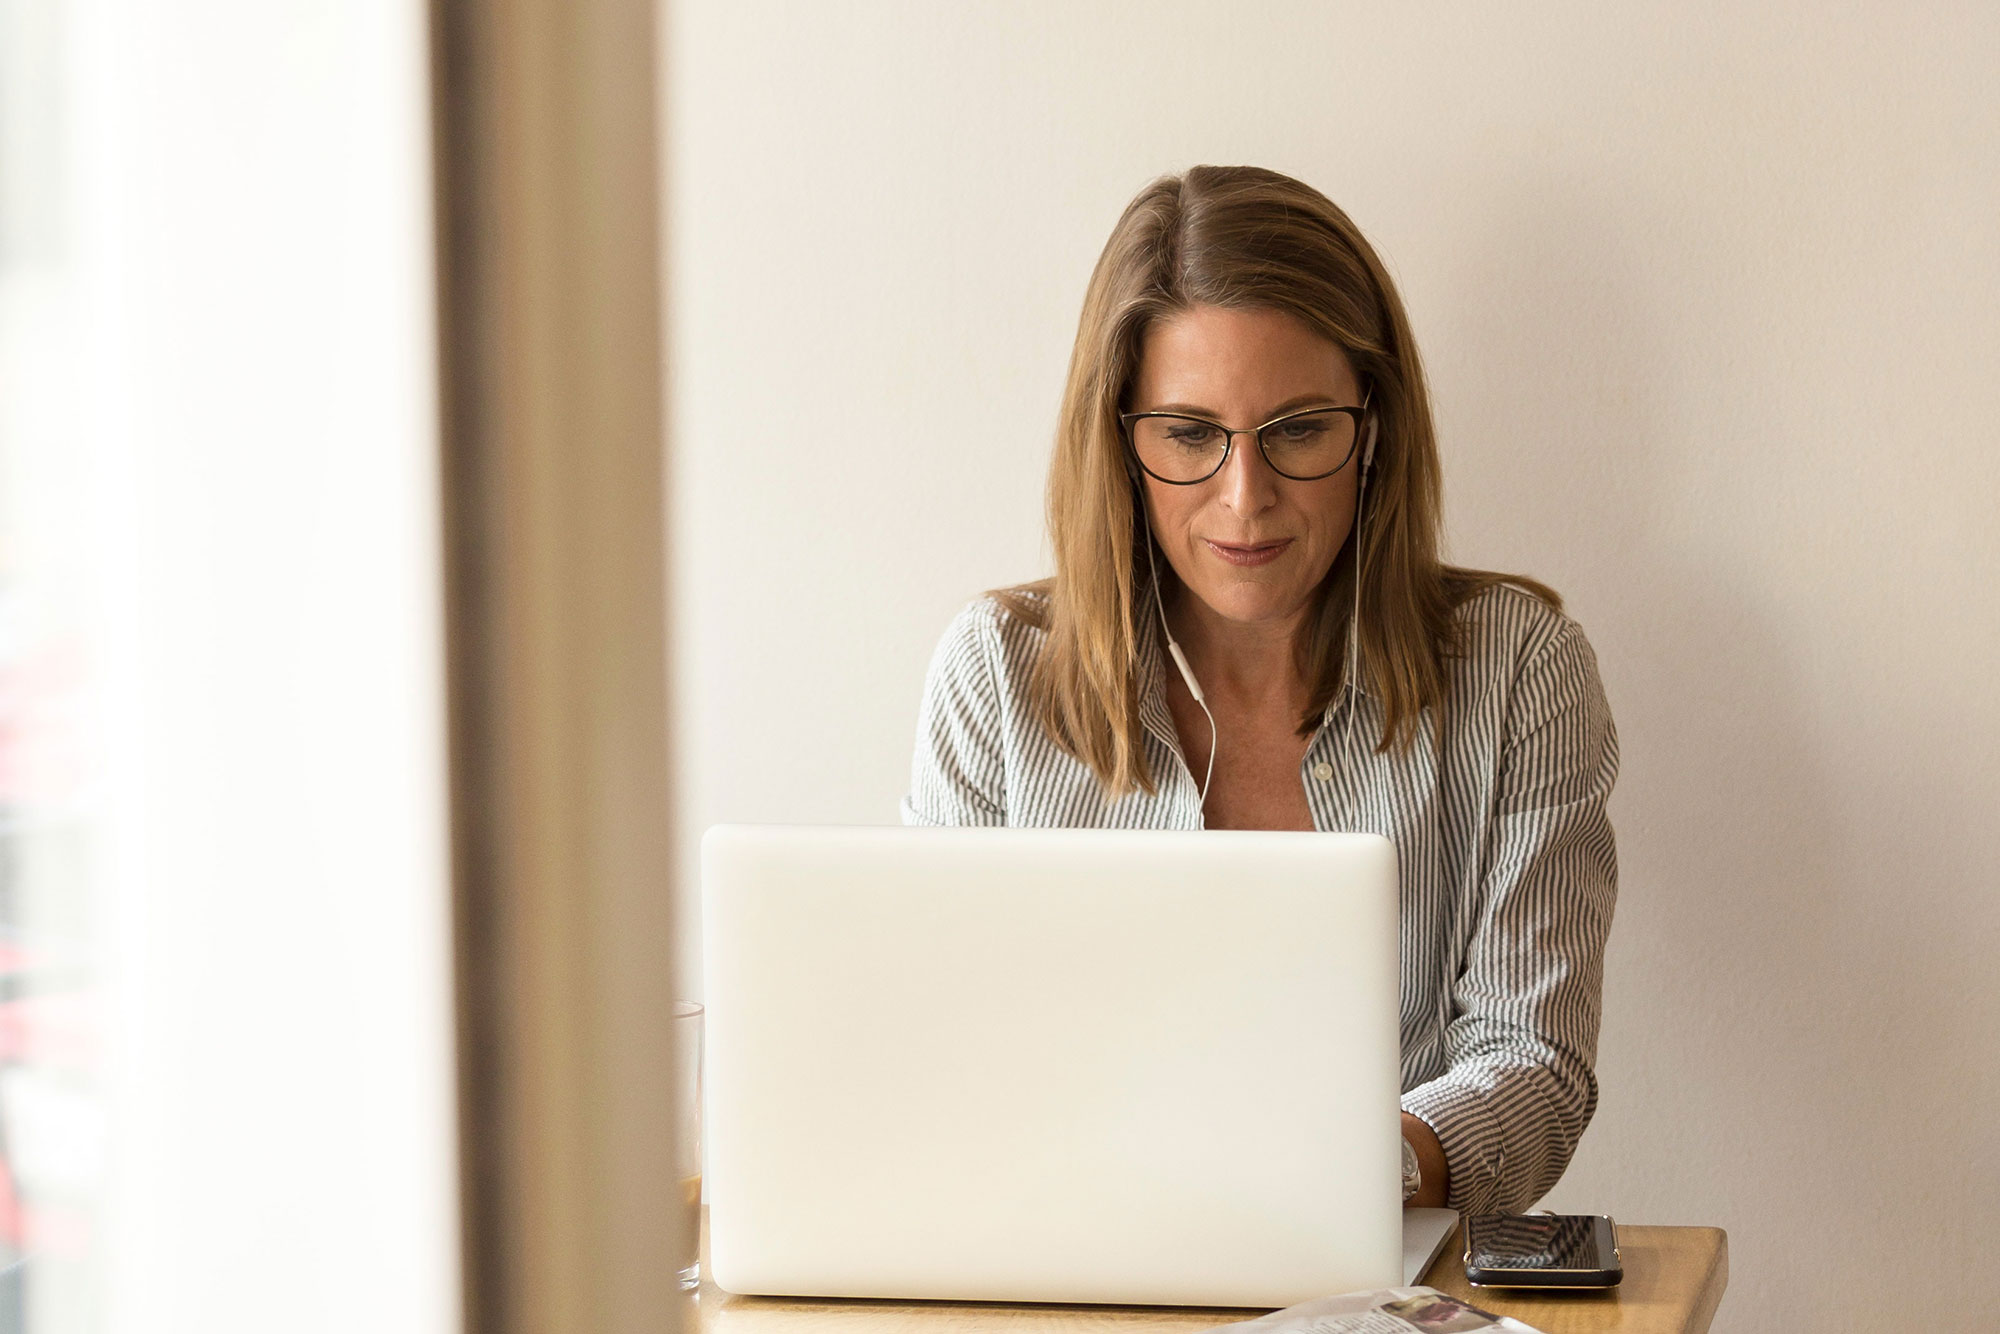 woman doing research on laptop